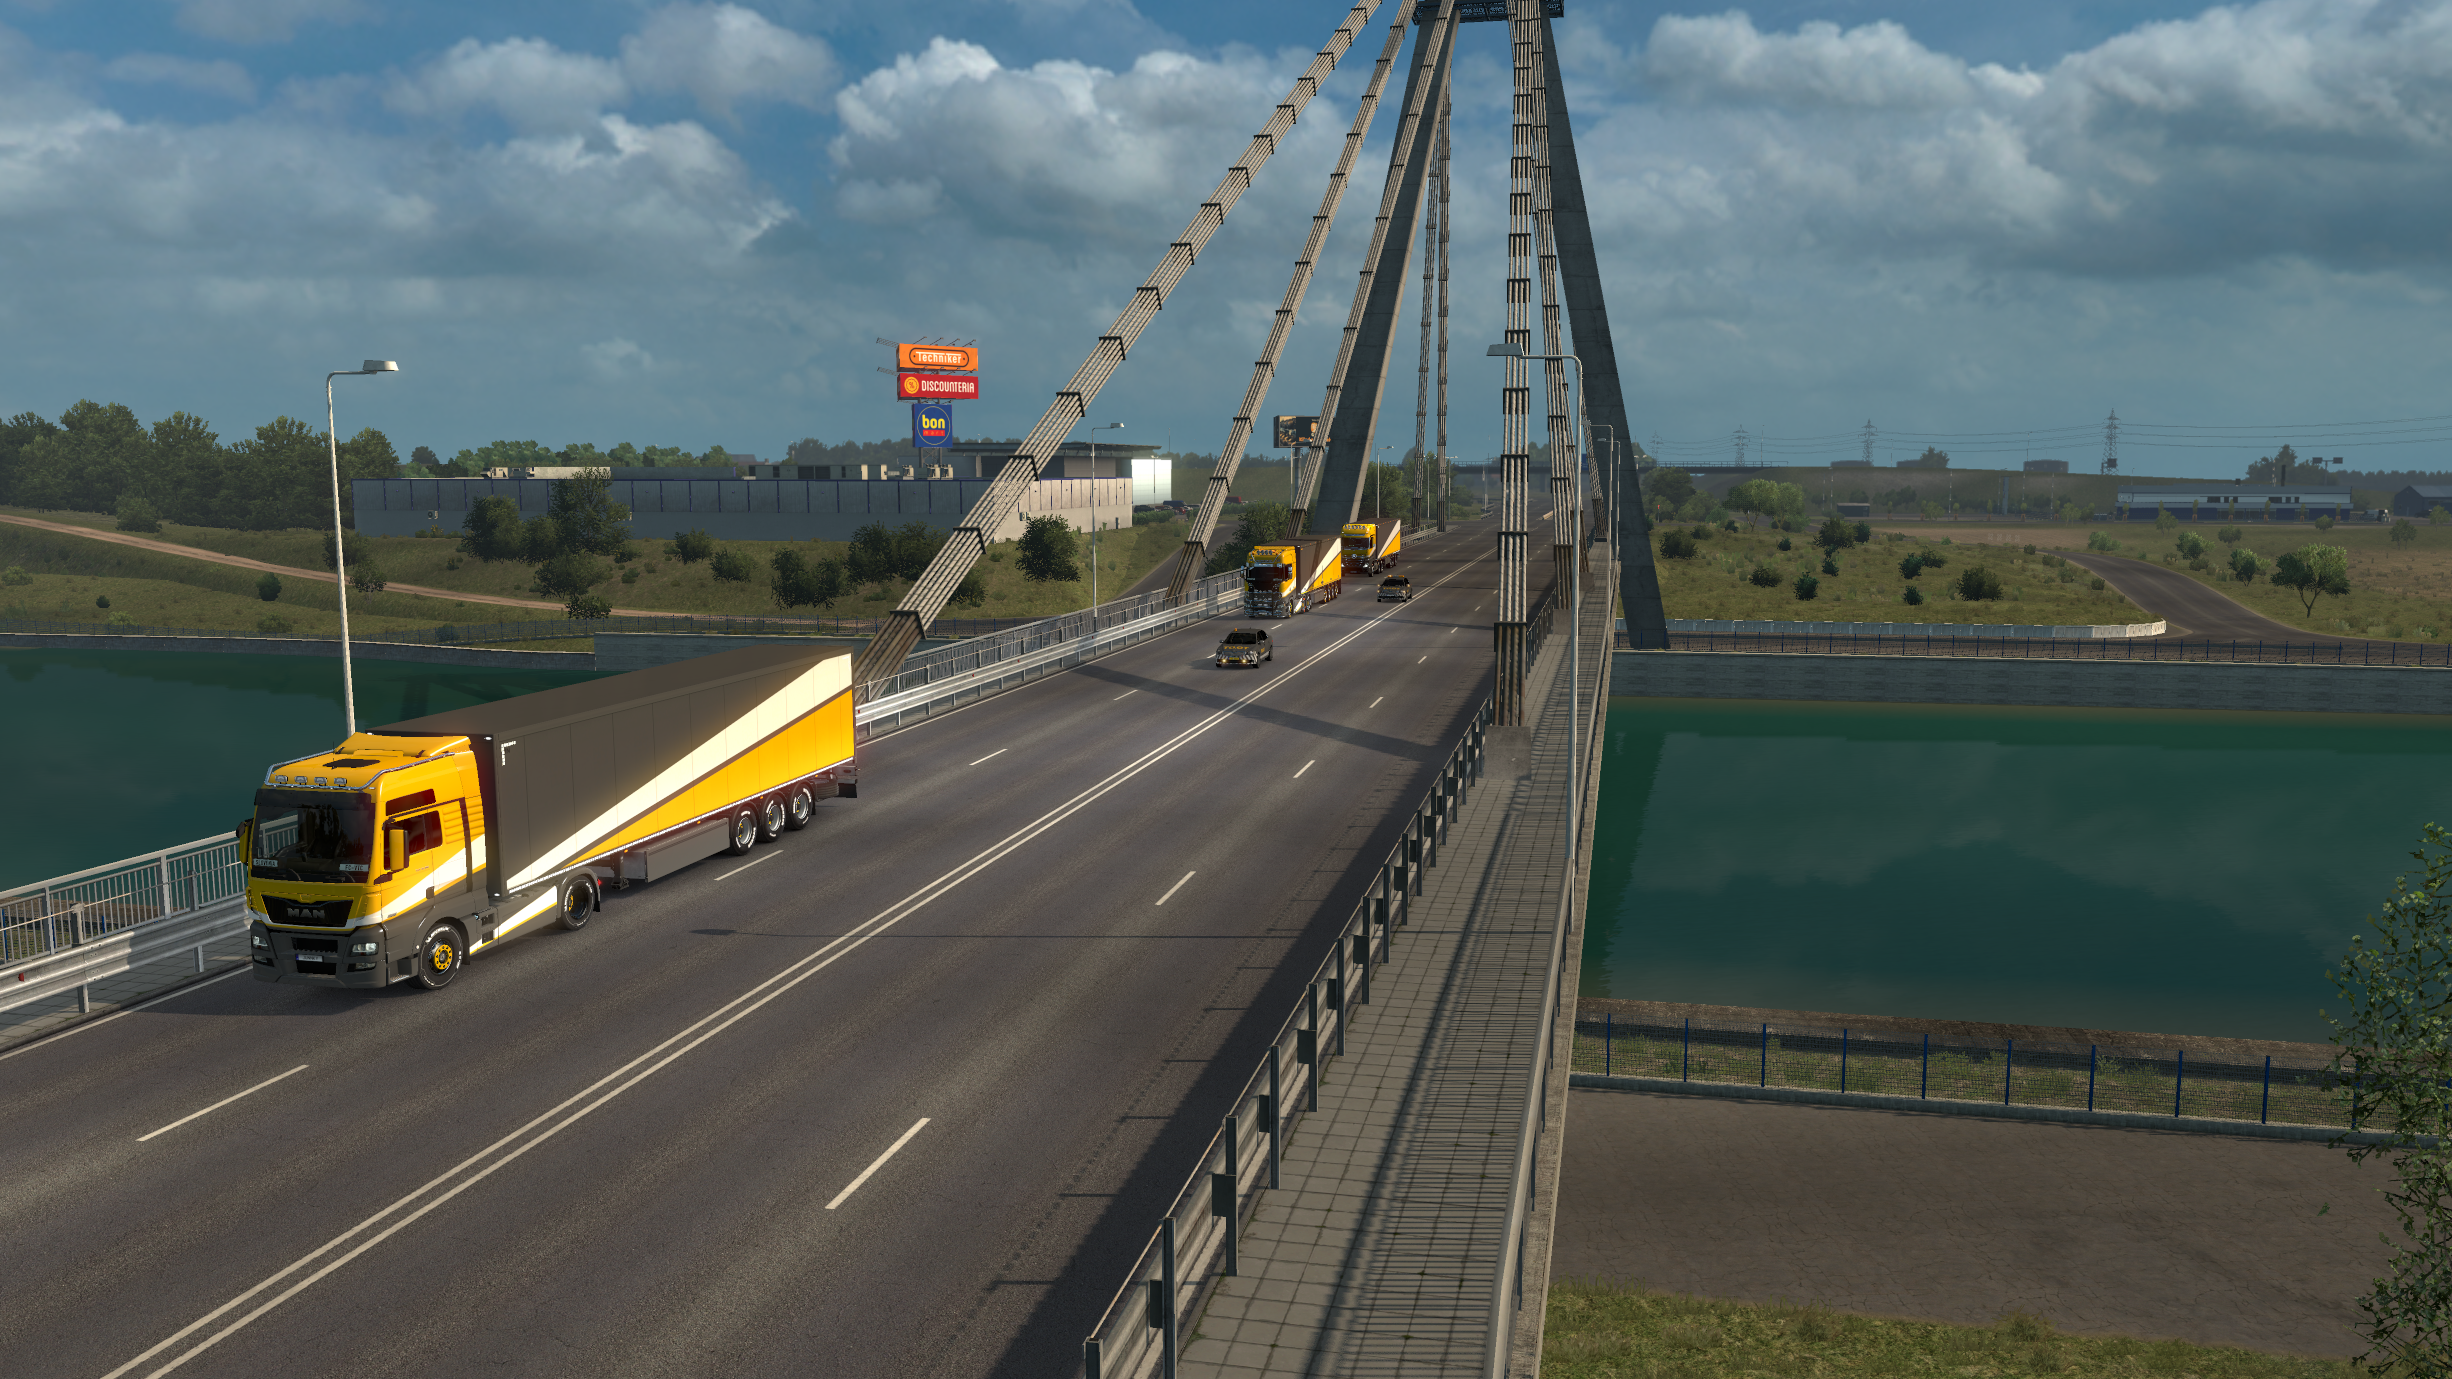 Euro-Truck-Simulator-2-Multiplayer-23_05_2020-20_08_41